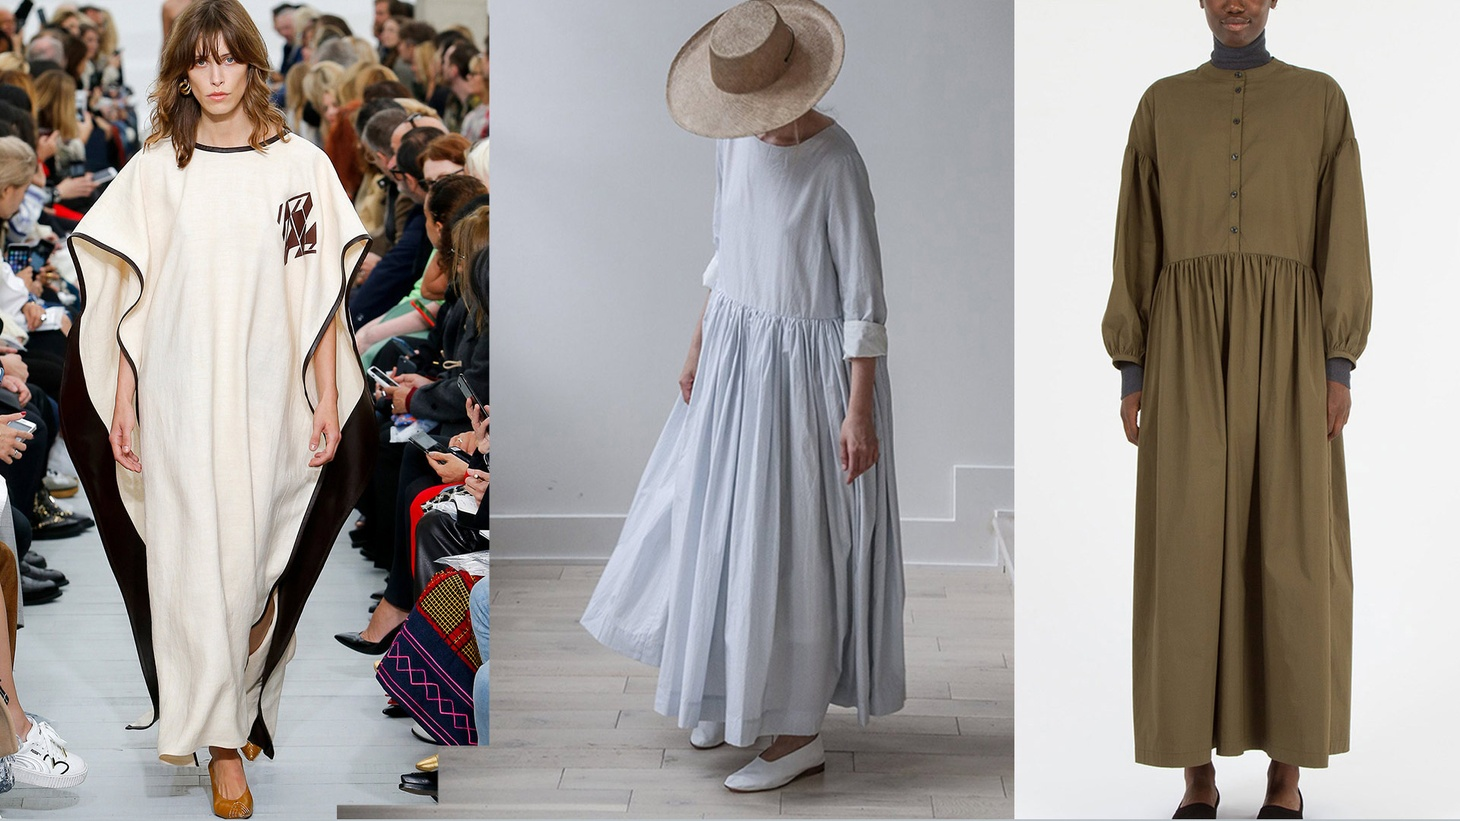 Examples of modest fashion in high design  (L-R) Céline, Rennes, Creatures of Comfort 